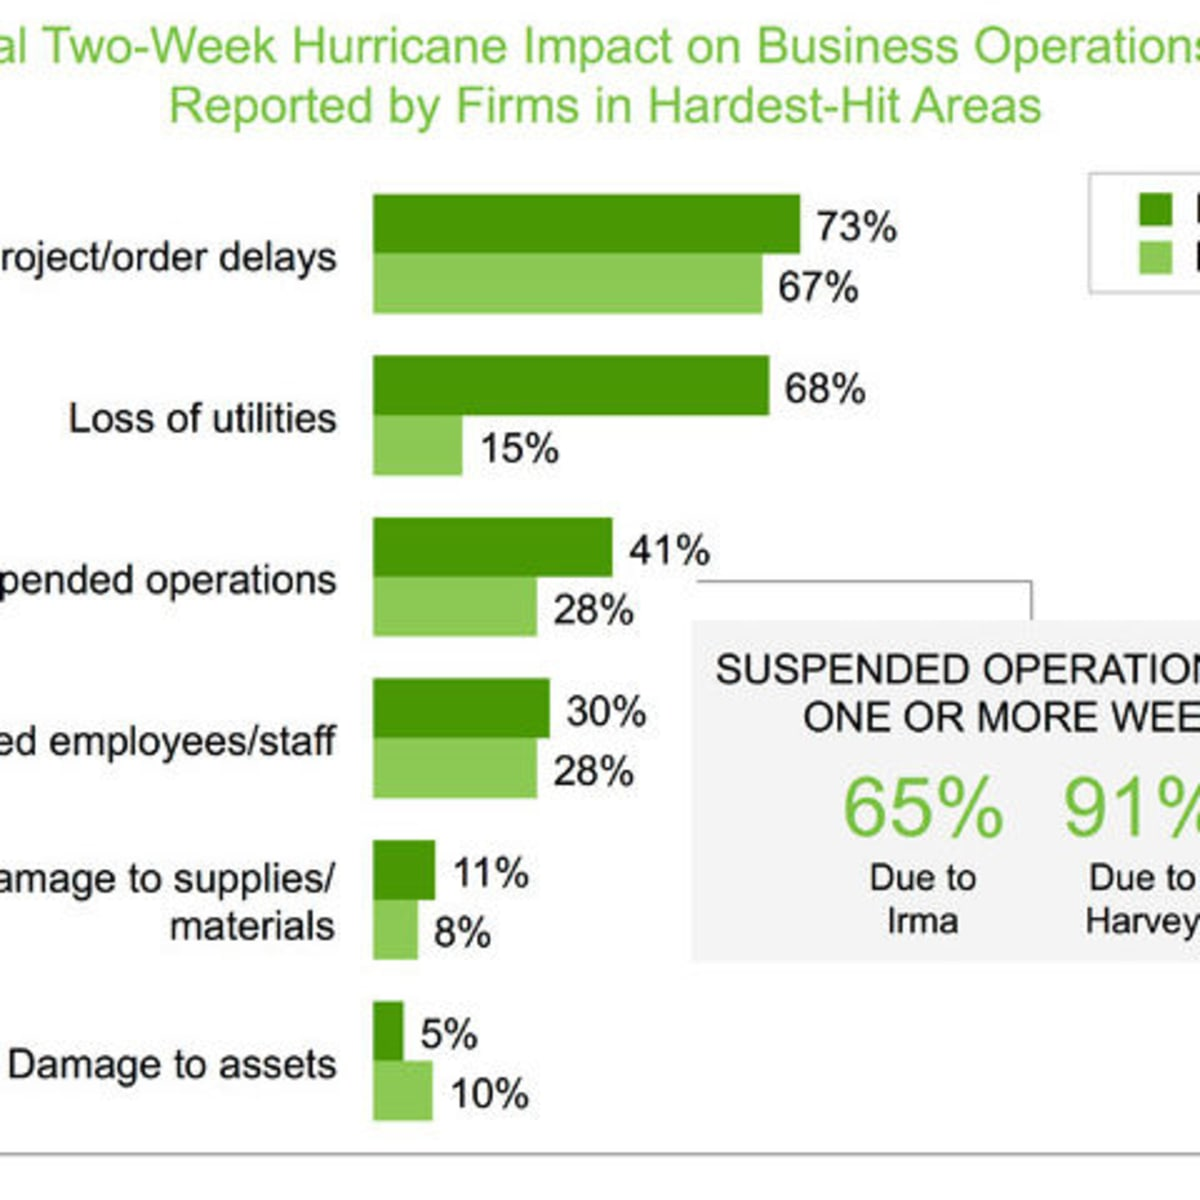 Graphic, initial two-week hurricane impact on business operations